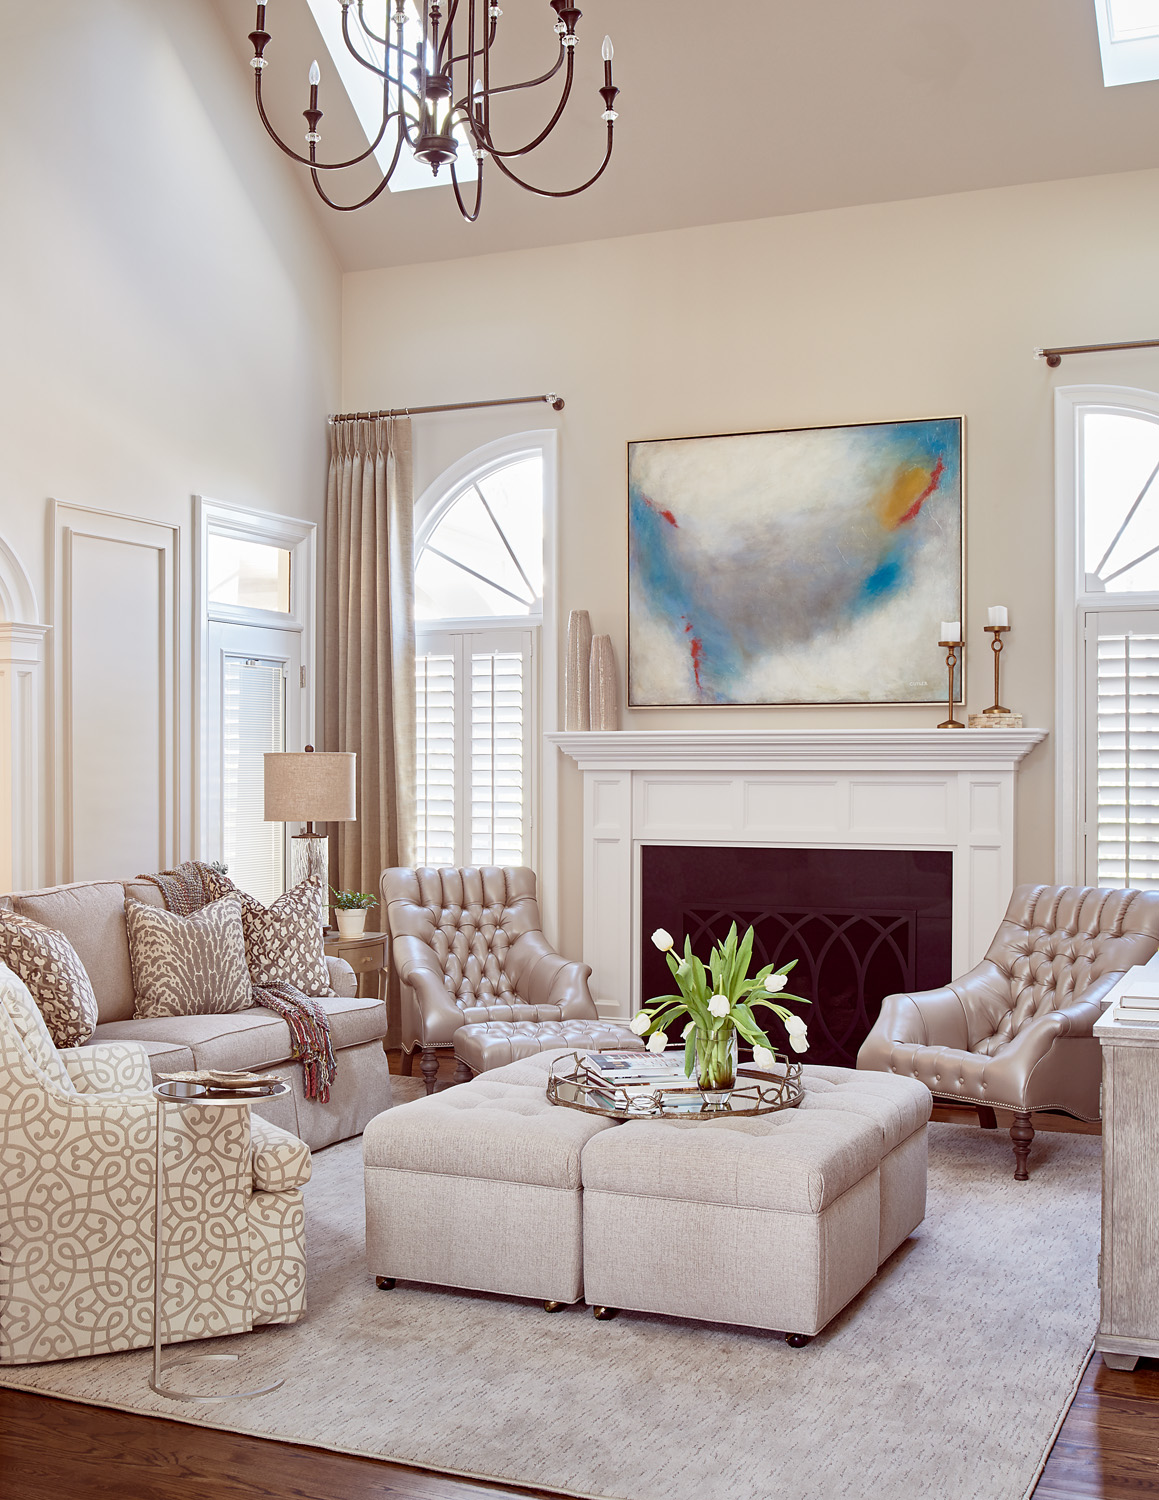 Neutral family room with sofa, chair, ottomans and tufted leather chairs fireplace with modern art and draperies